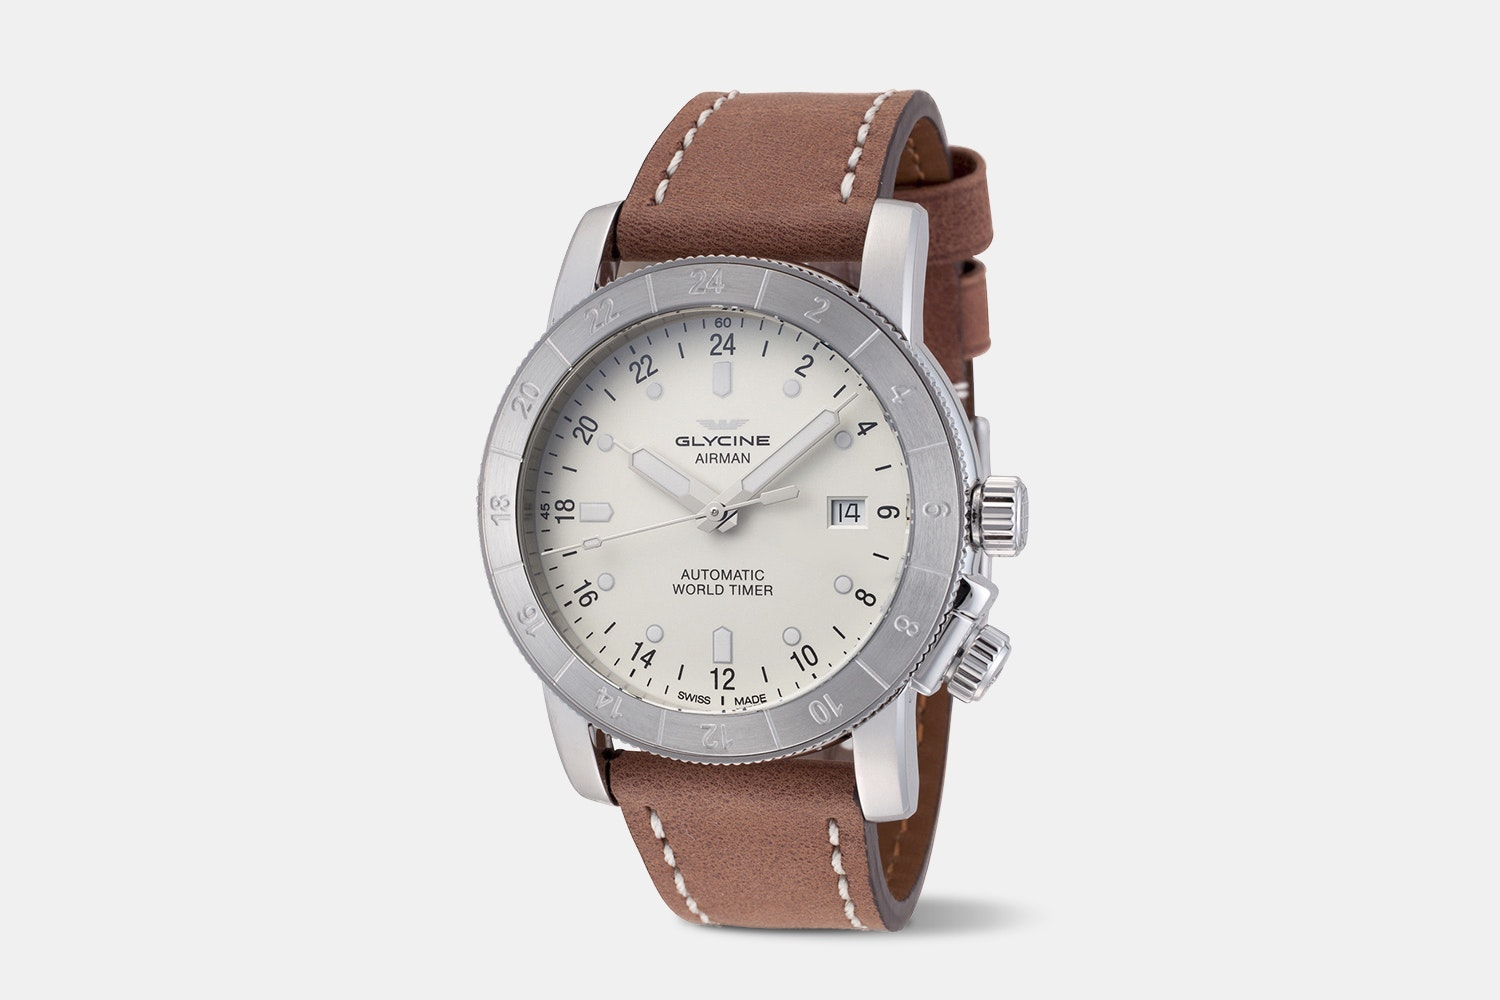 Airman 42 - GL0141 | White Dial, Brown Leather Strap